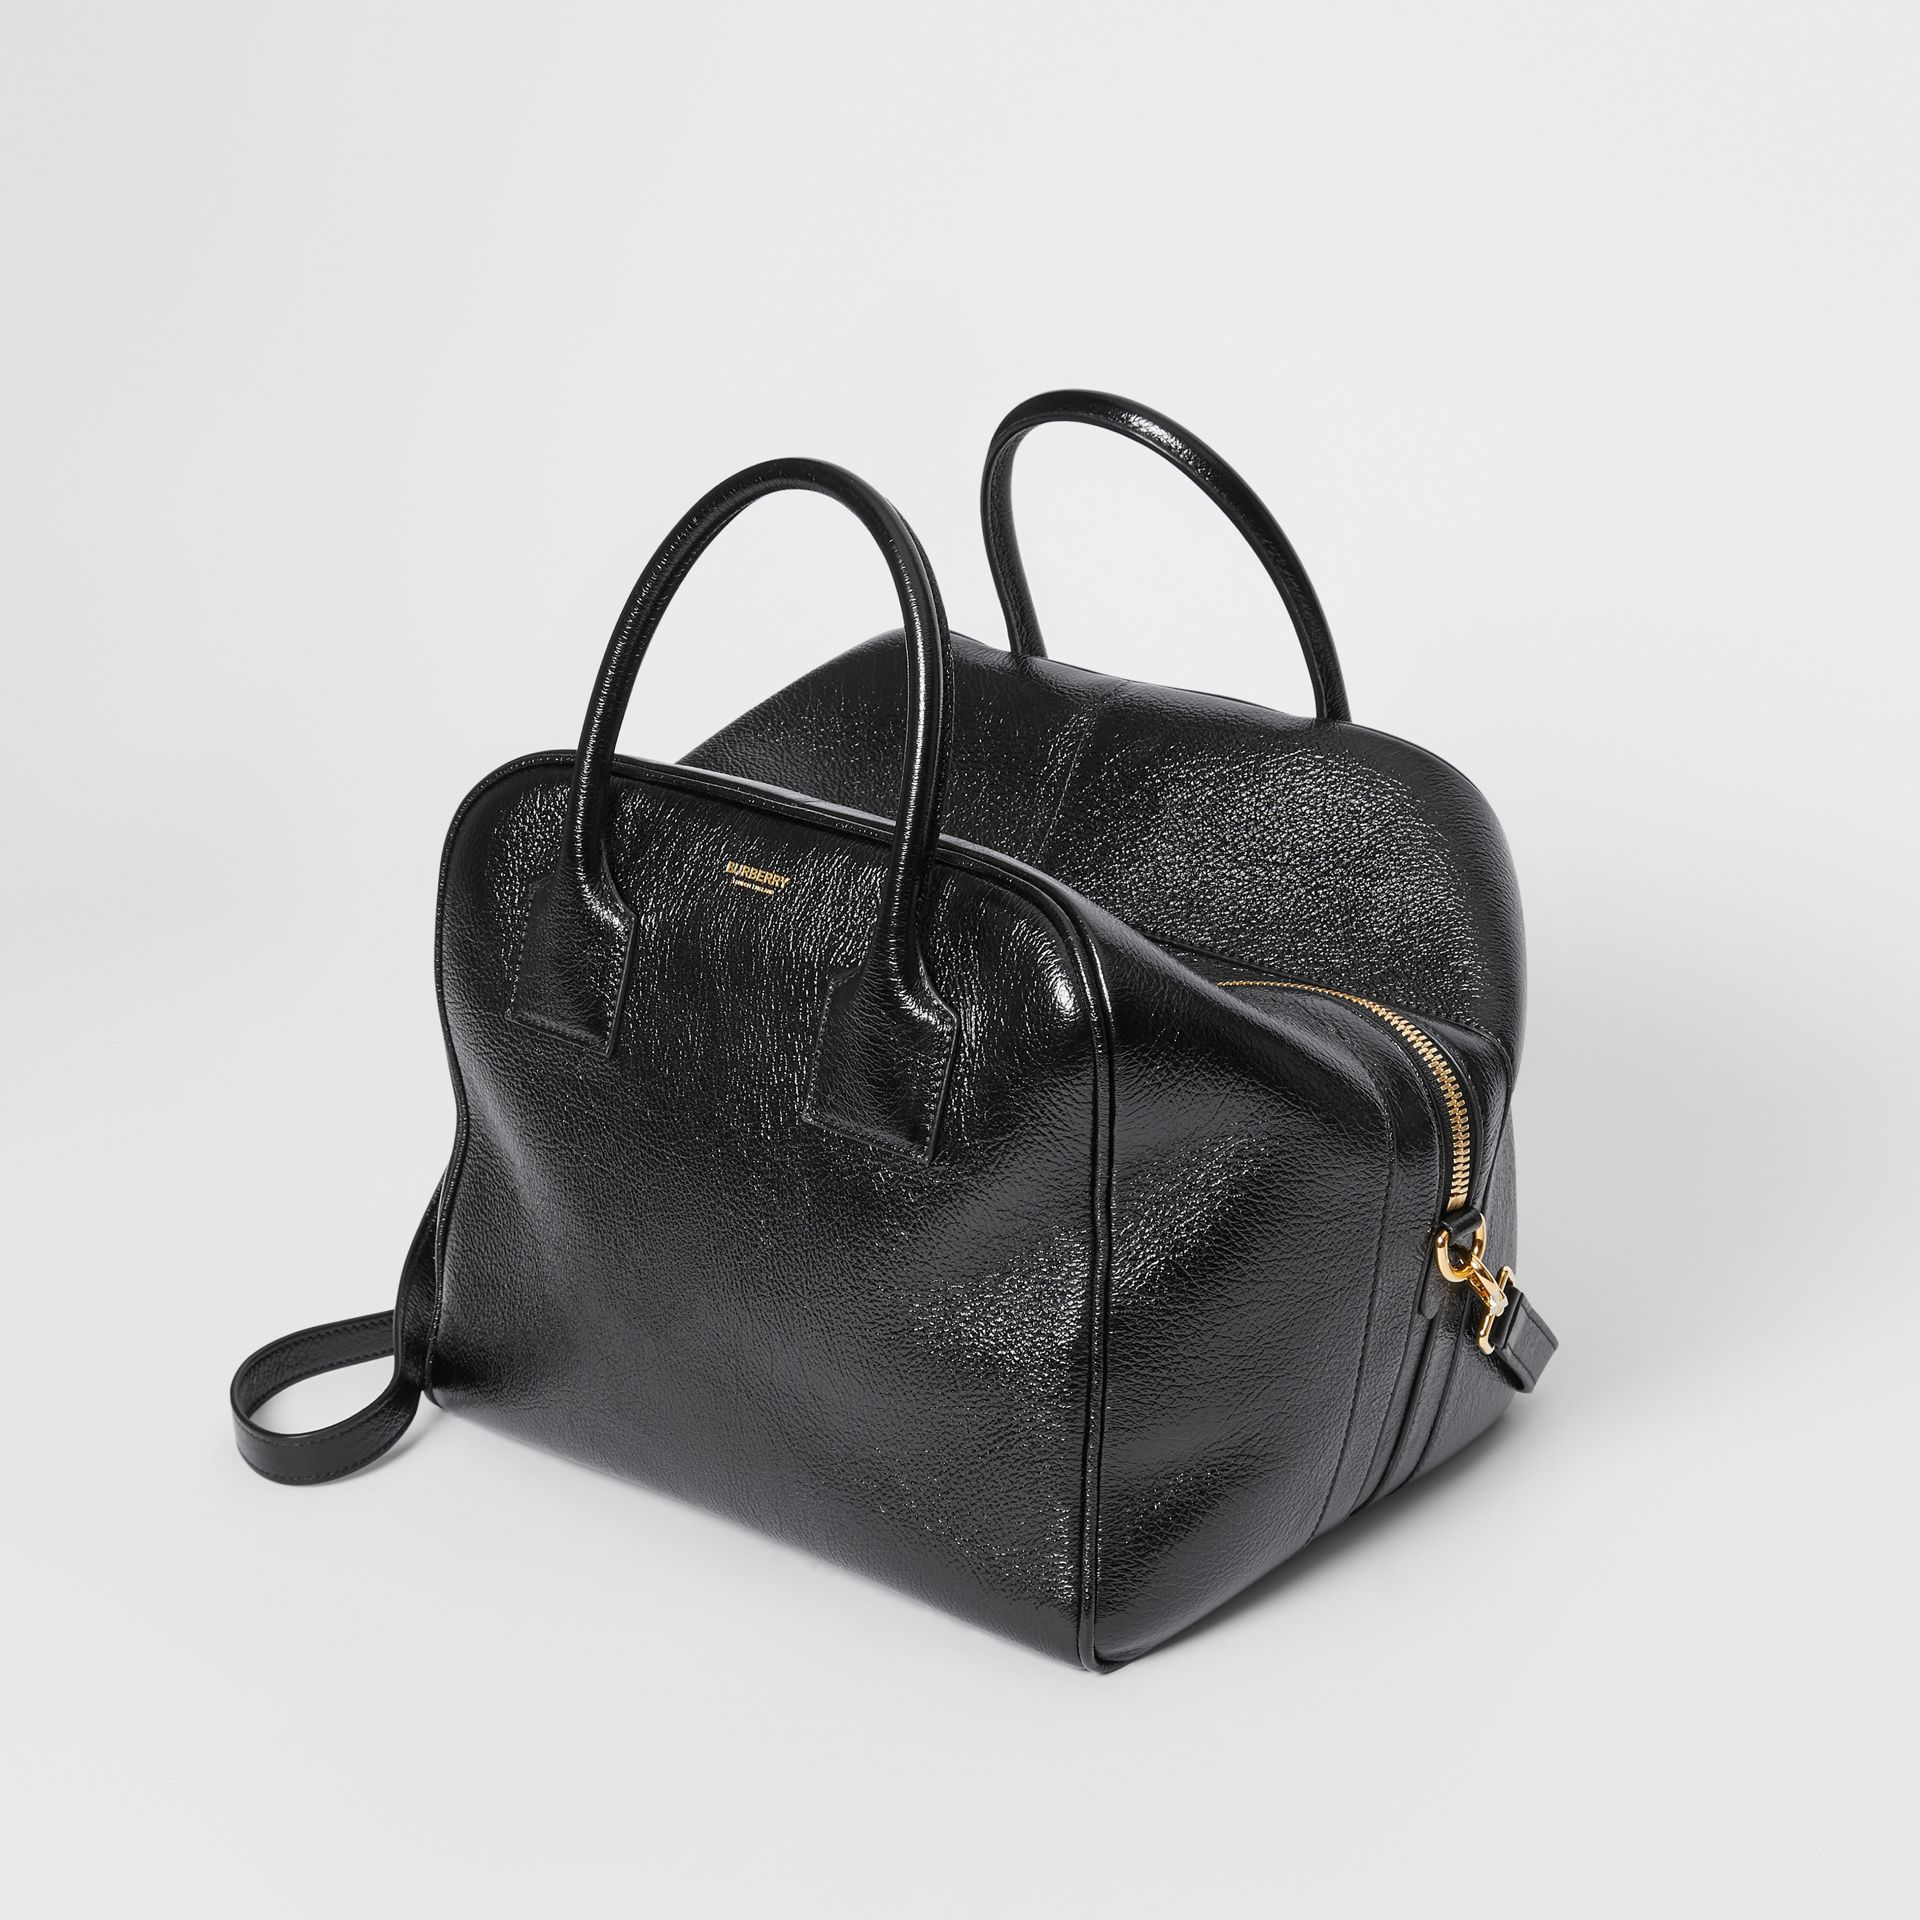 Medium Lambskin Cube Bag in Black - Women | Burberry - gallery image 3